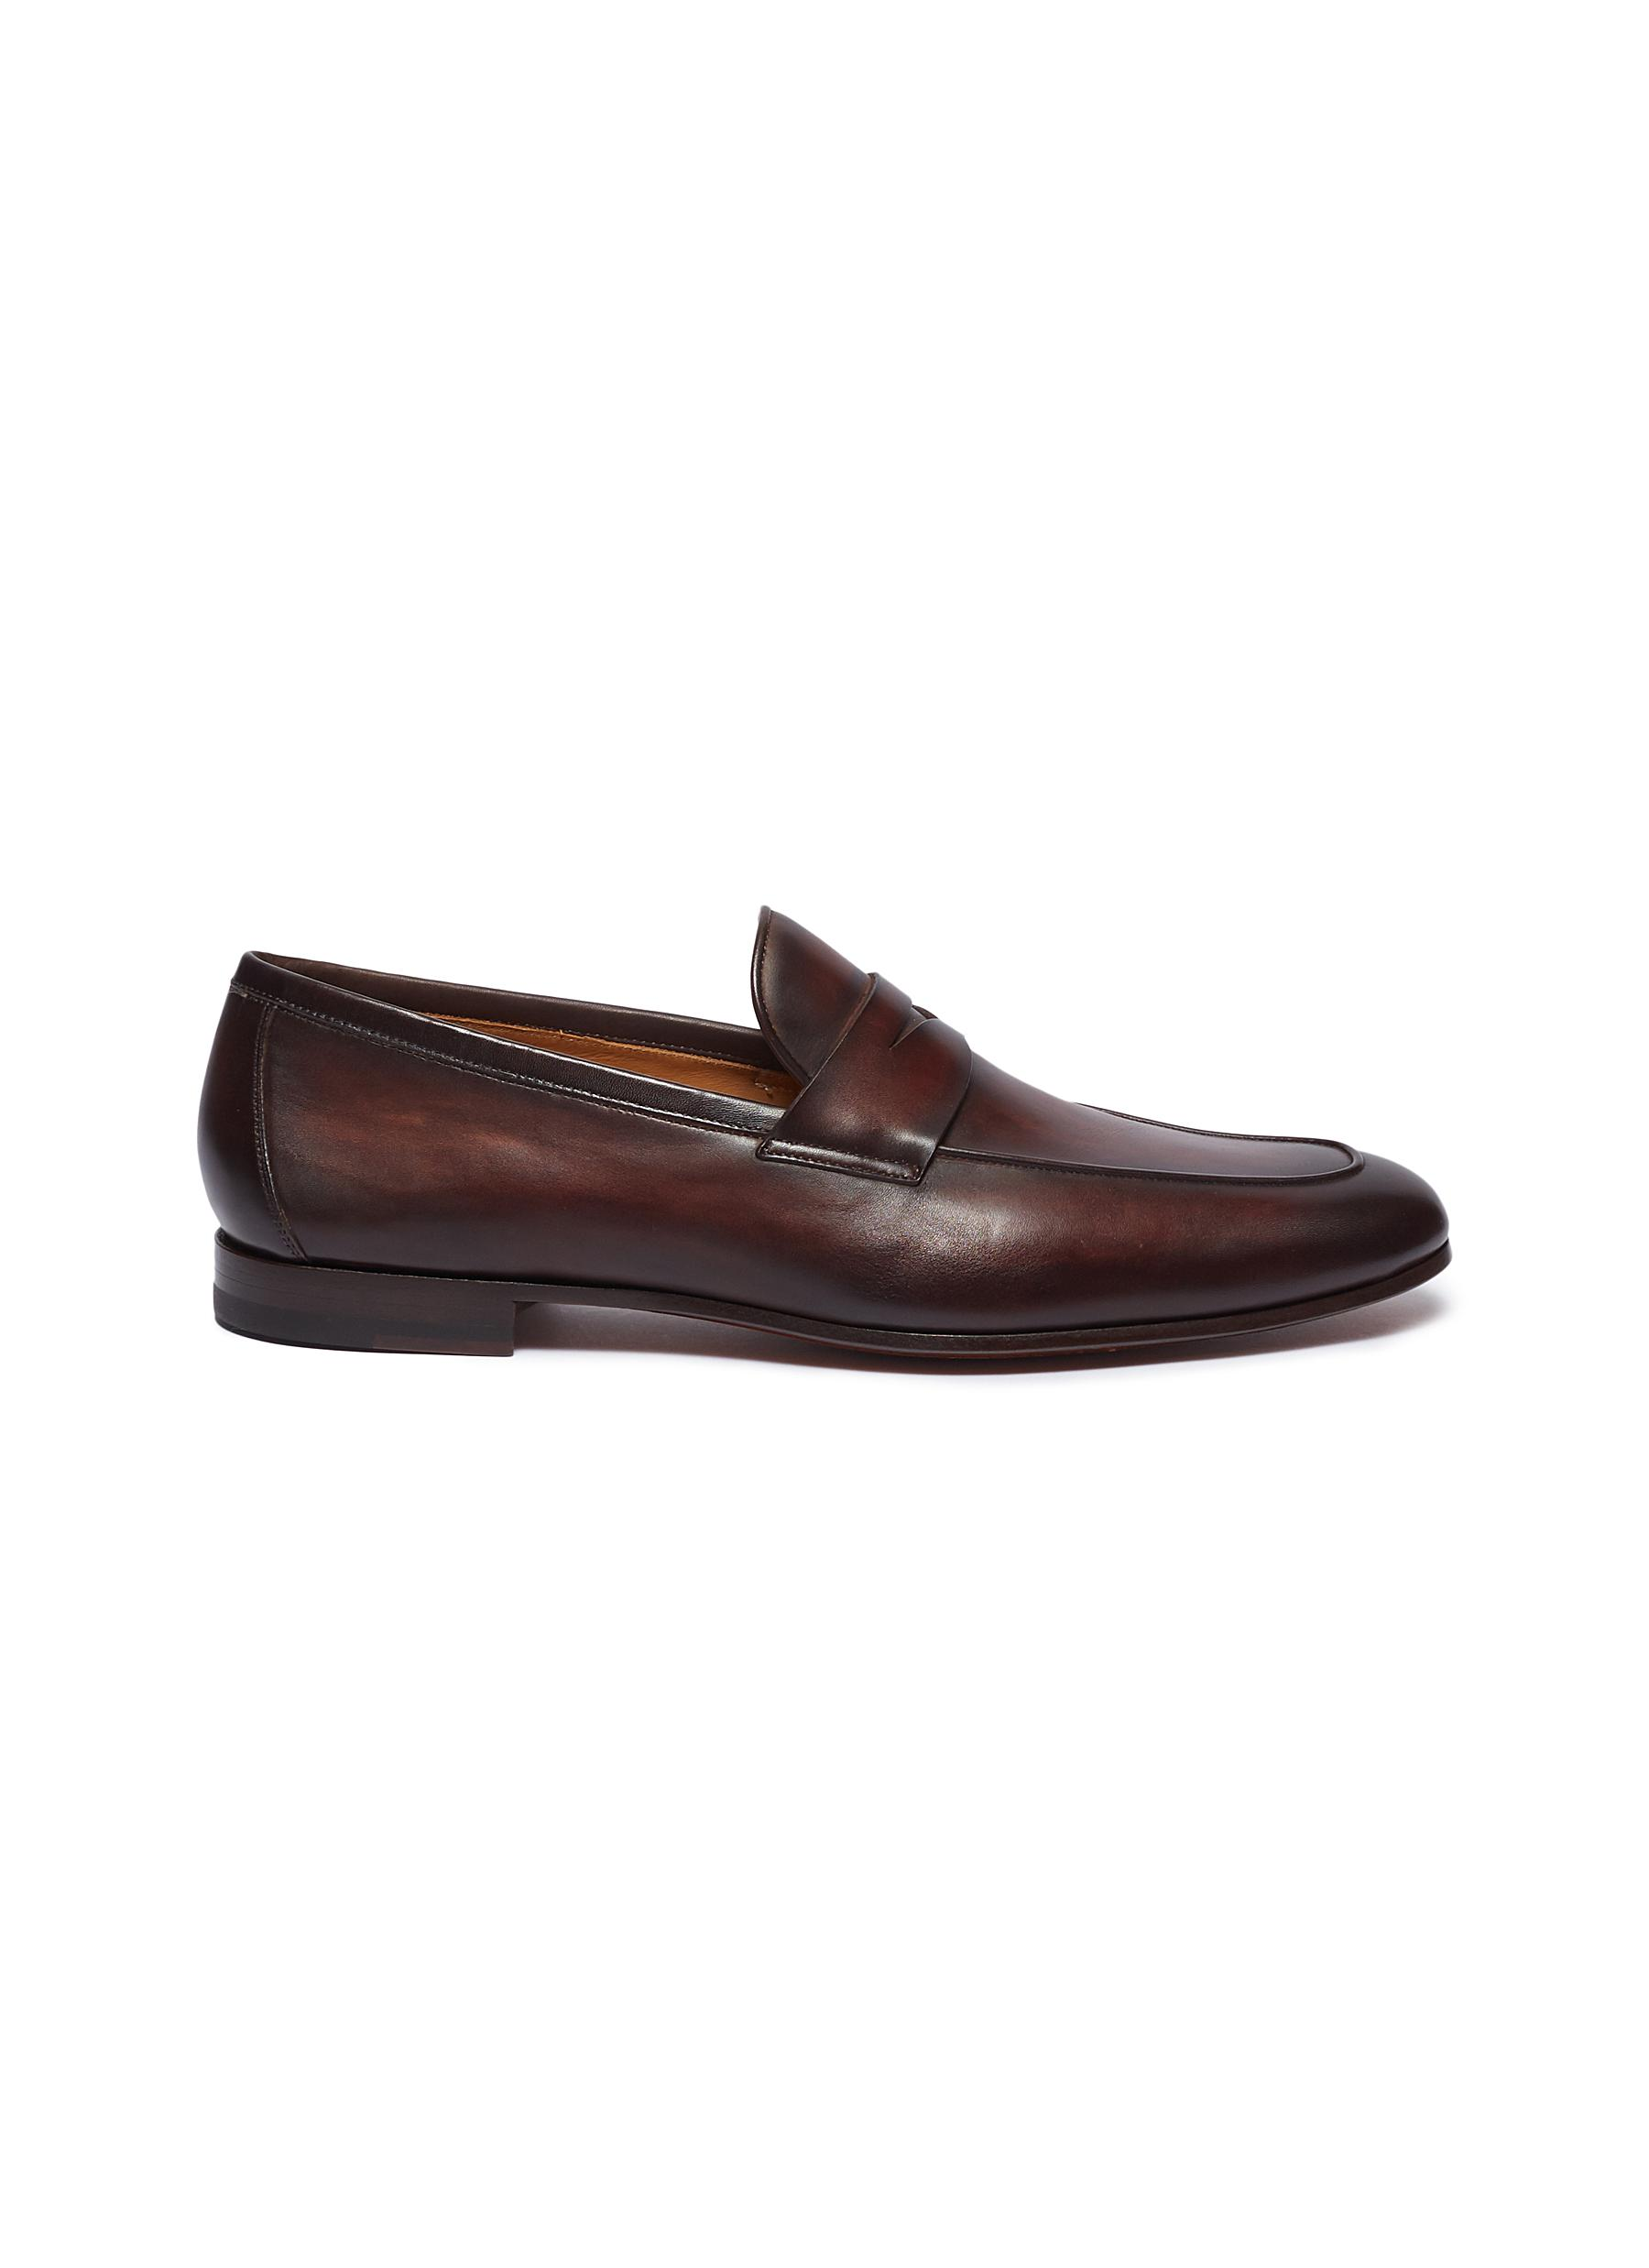 7b56c045e9d Magnanni. Leather penny loafers